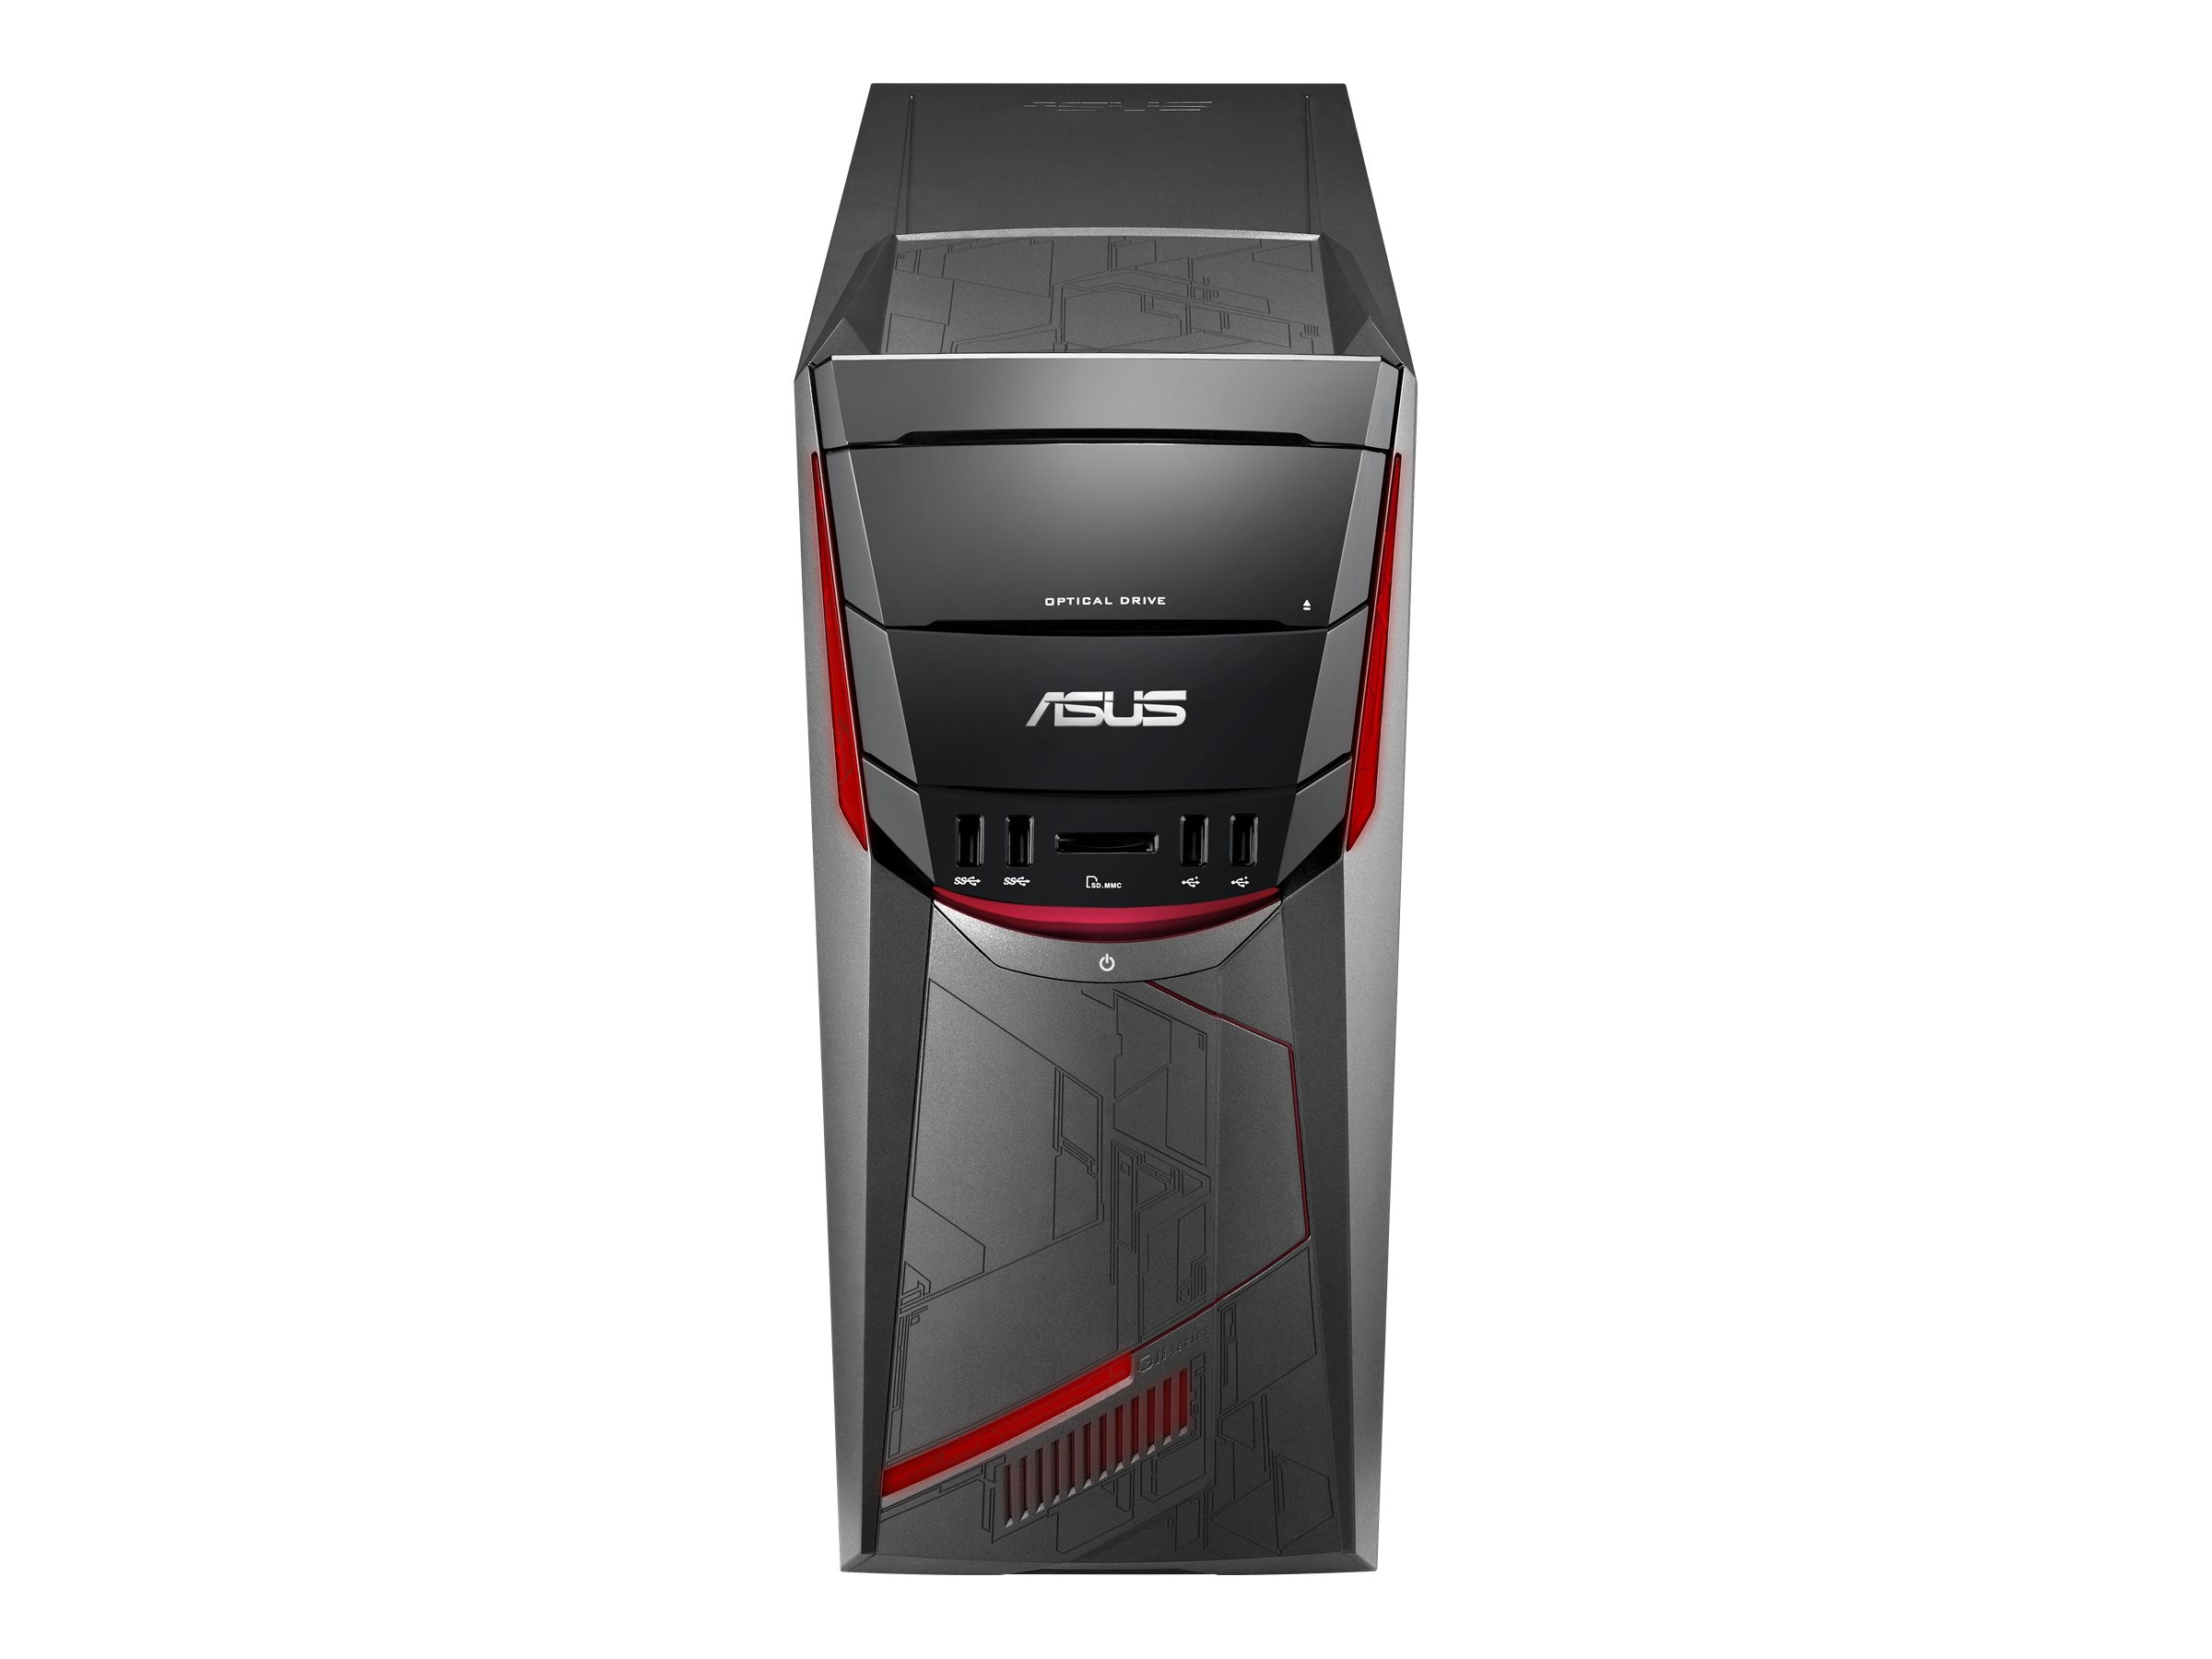 Asus G11CD-DB52 Desktop Core i5-6400 2.7GHz 8GB 1TB GTX950 W10, G11CD-DB52